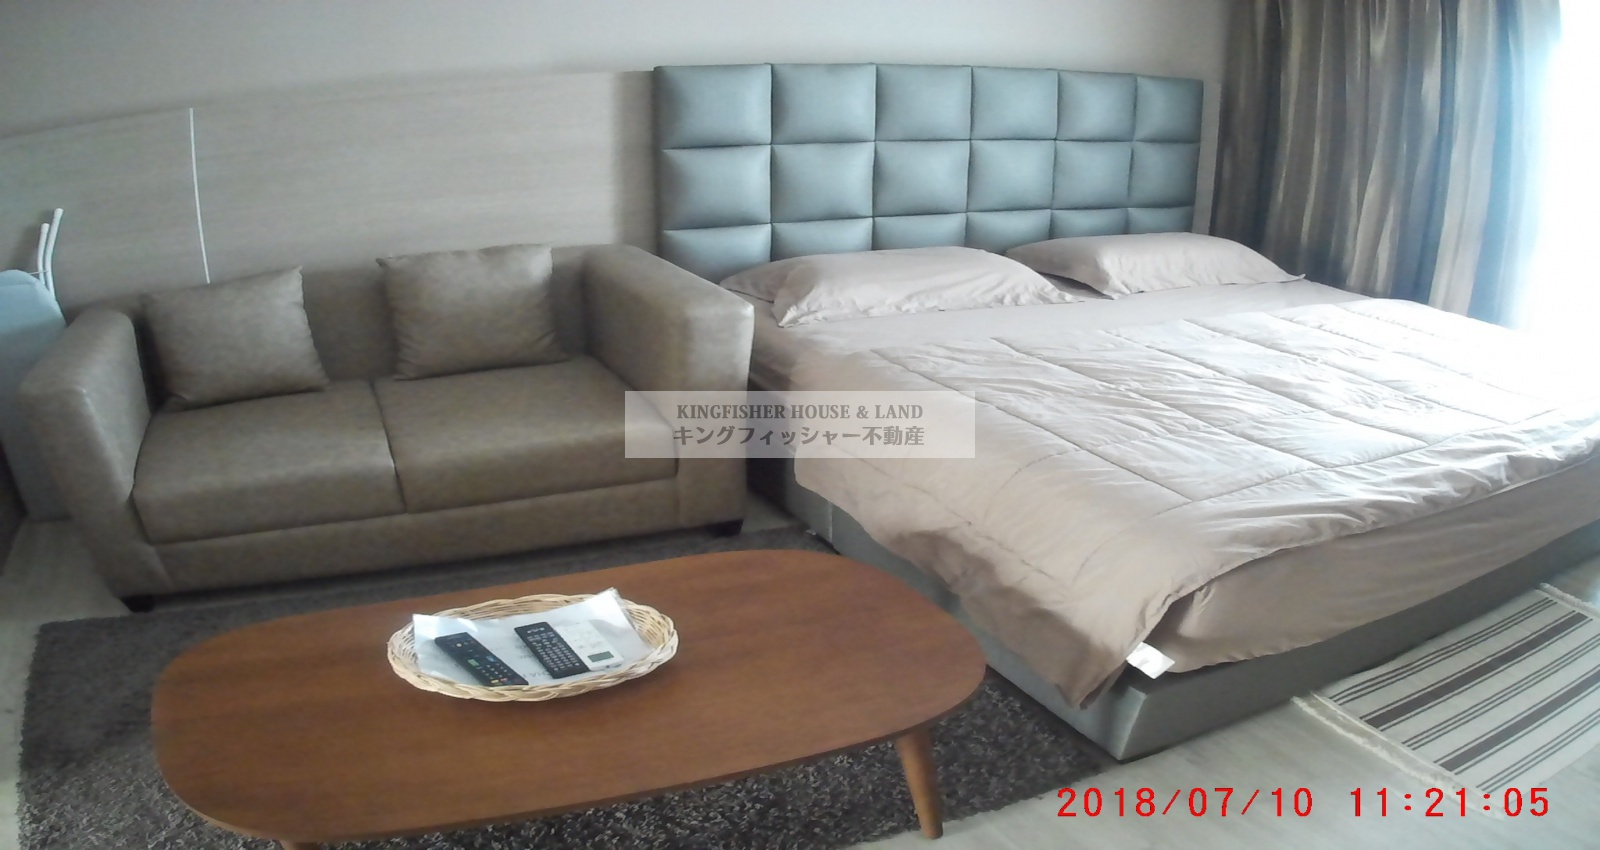 1 Bedrooms, Condominium, For Rent, 1 Bathrooms, Listing ID 1293, Sriracha, Thailand, 20110,